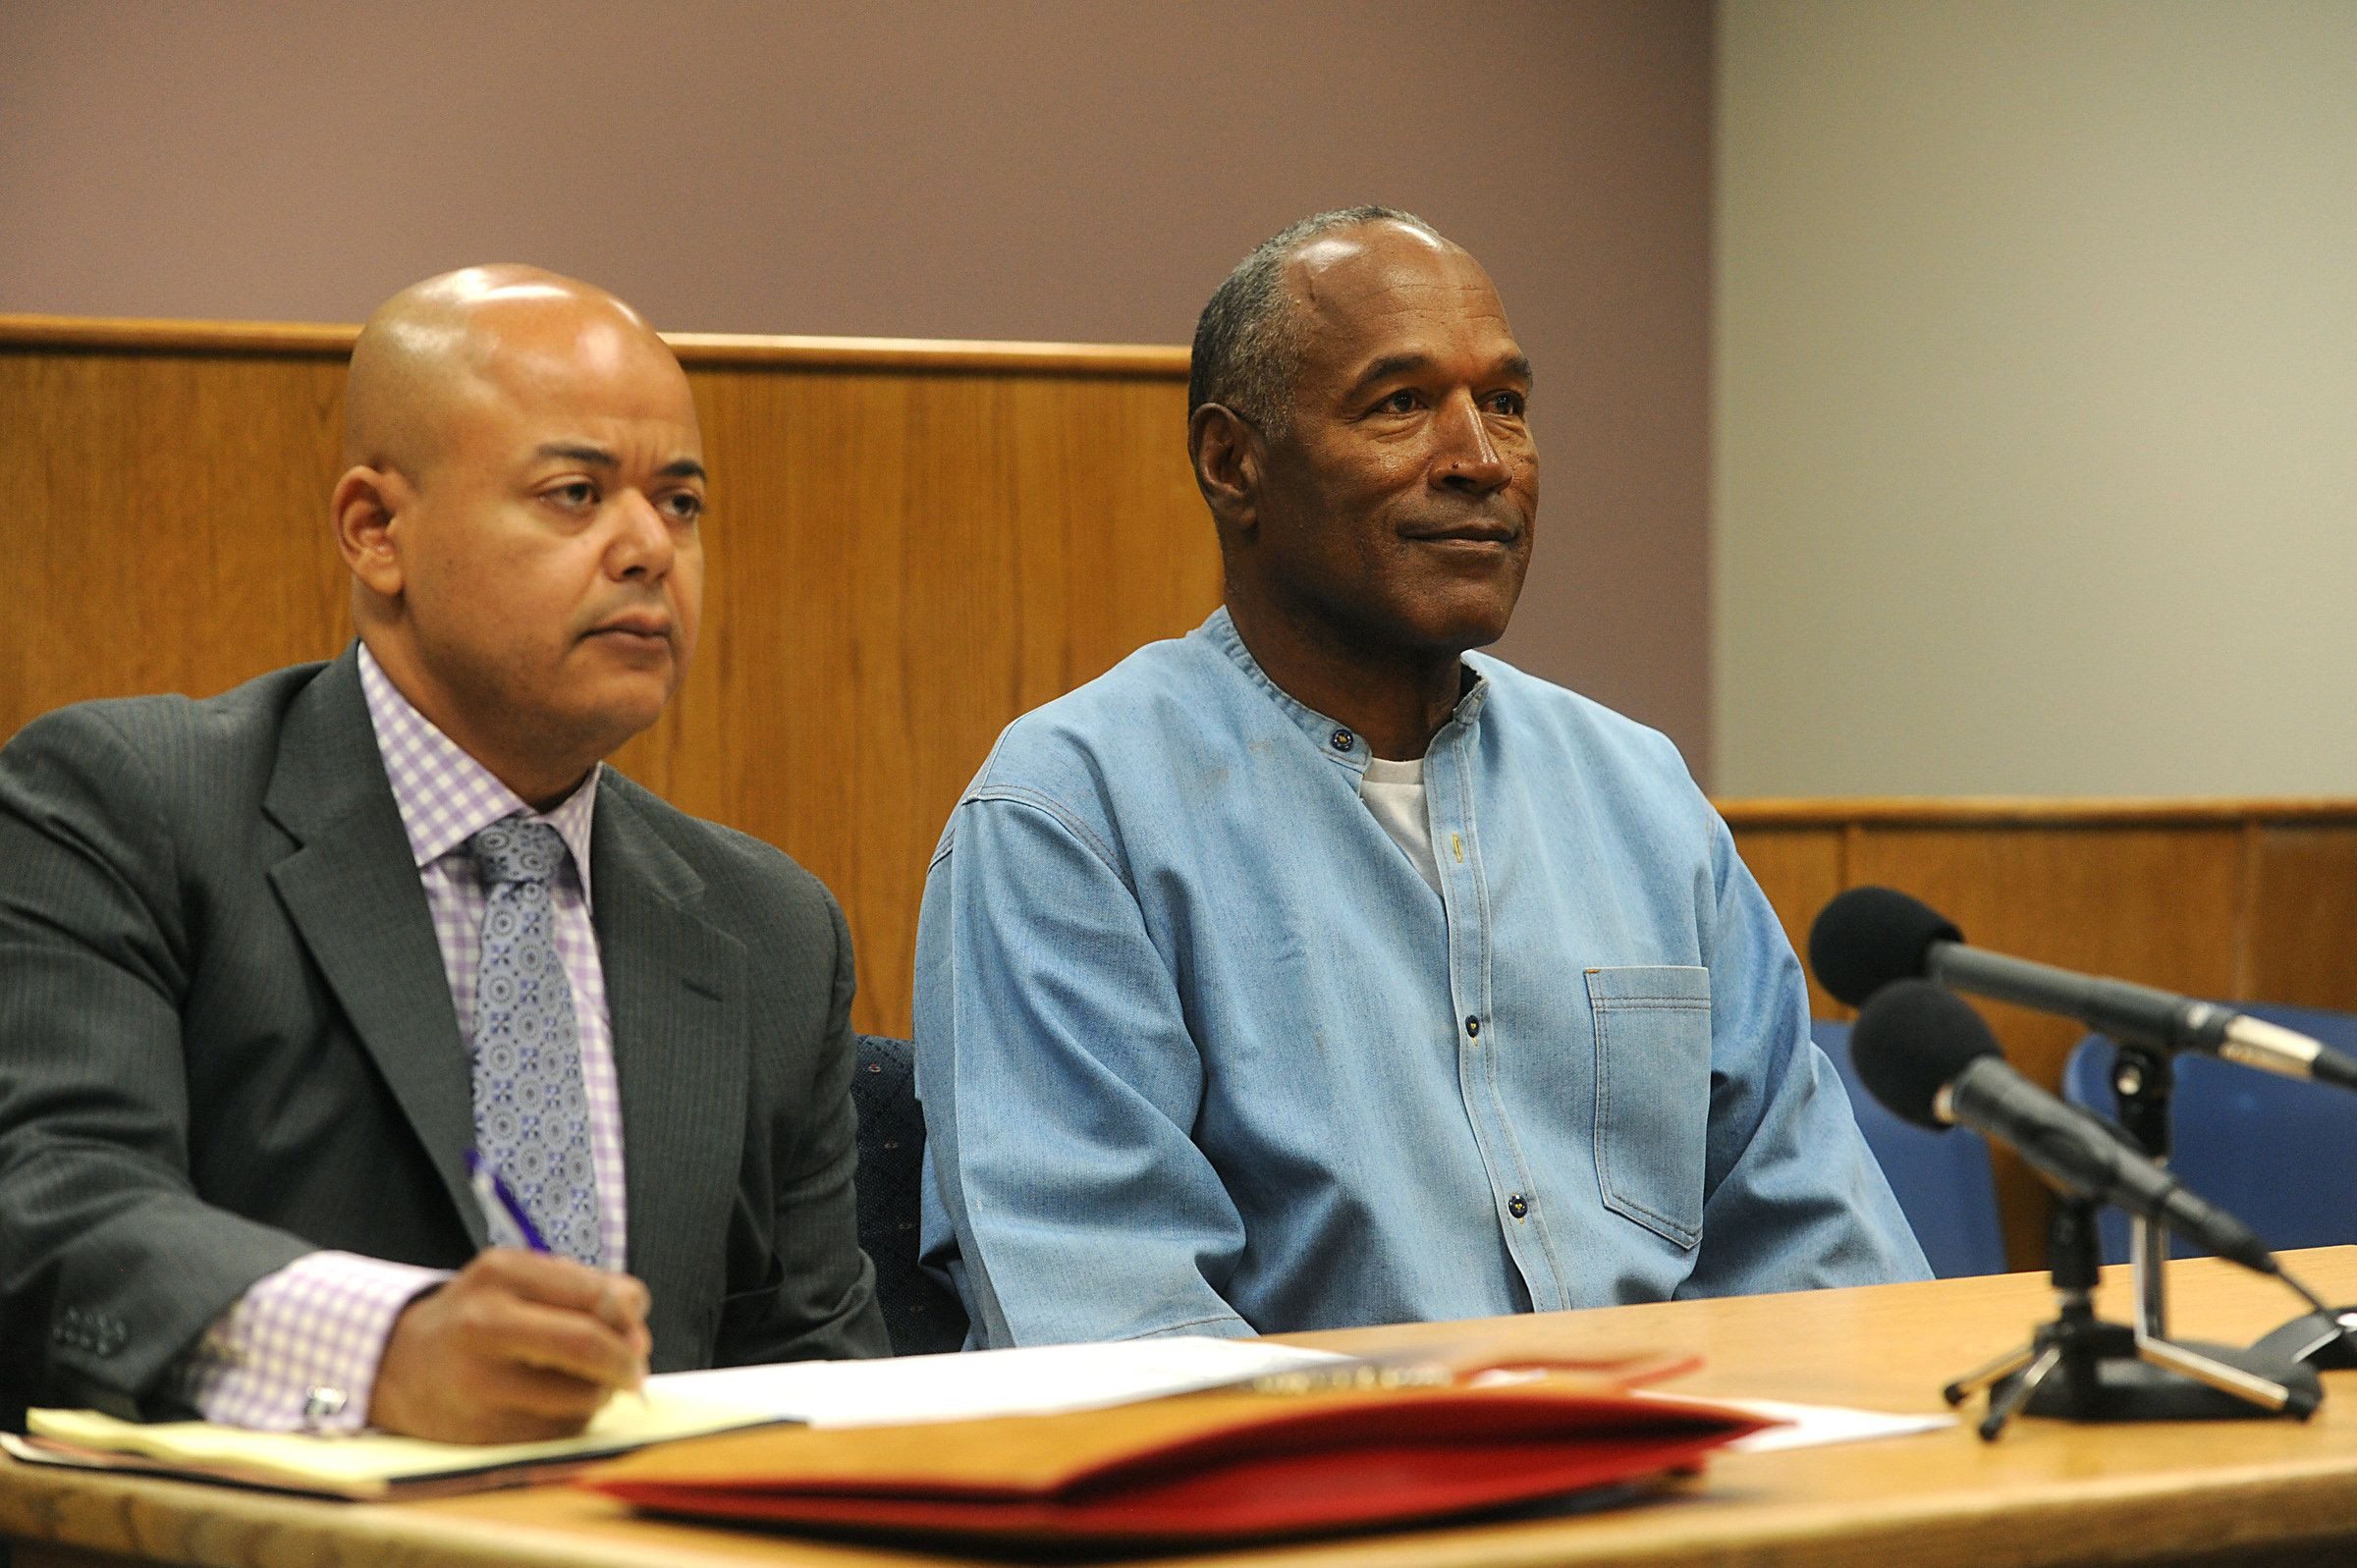 O.J. Simpson made several eyebrowraising claims about his